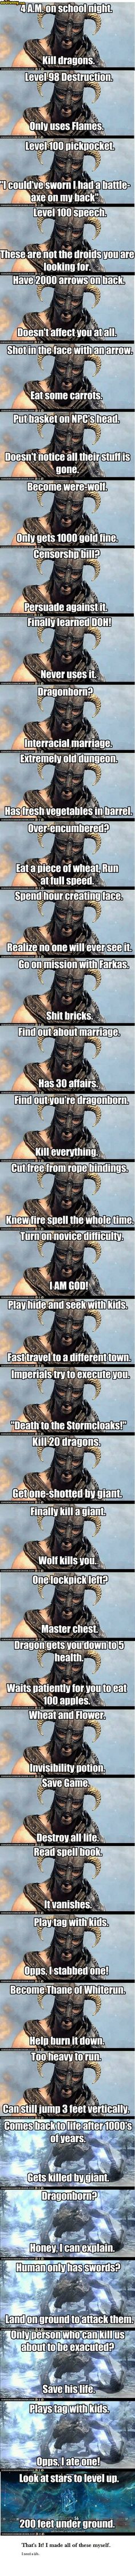 All these Skyrim memes are beautiful #videogameparty #winnipeg